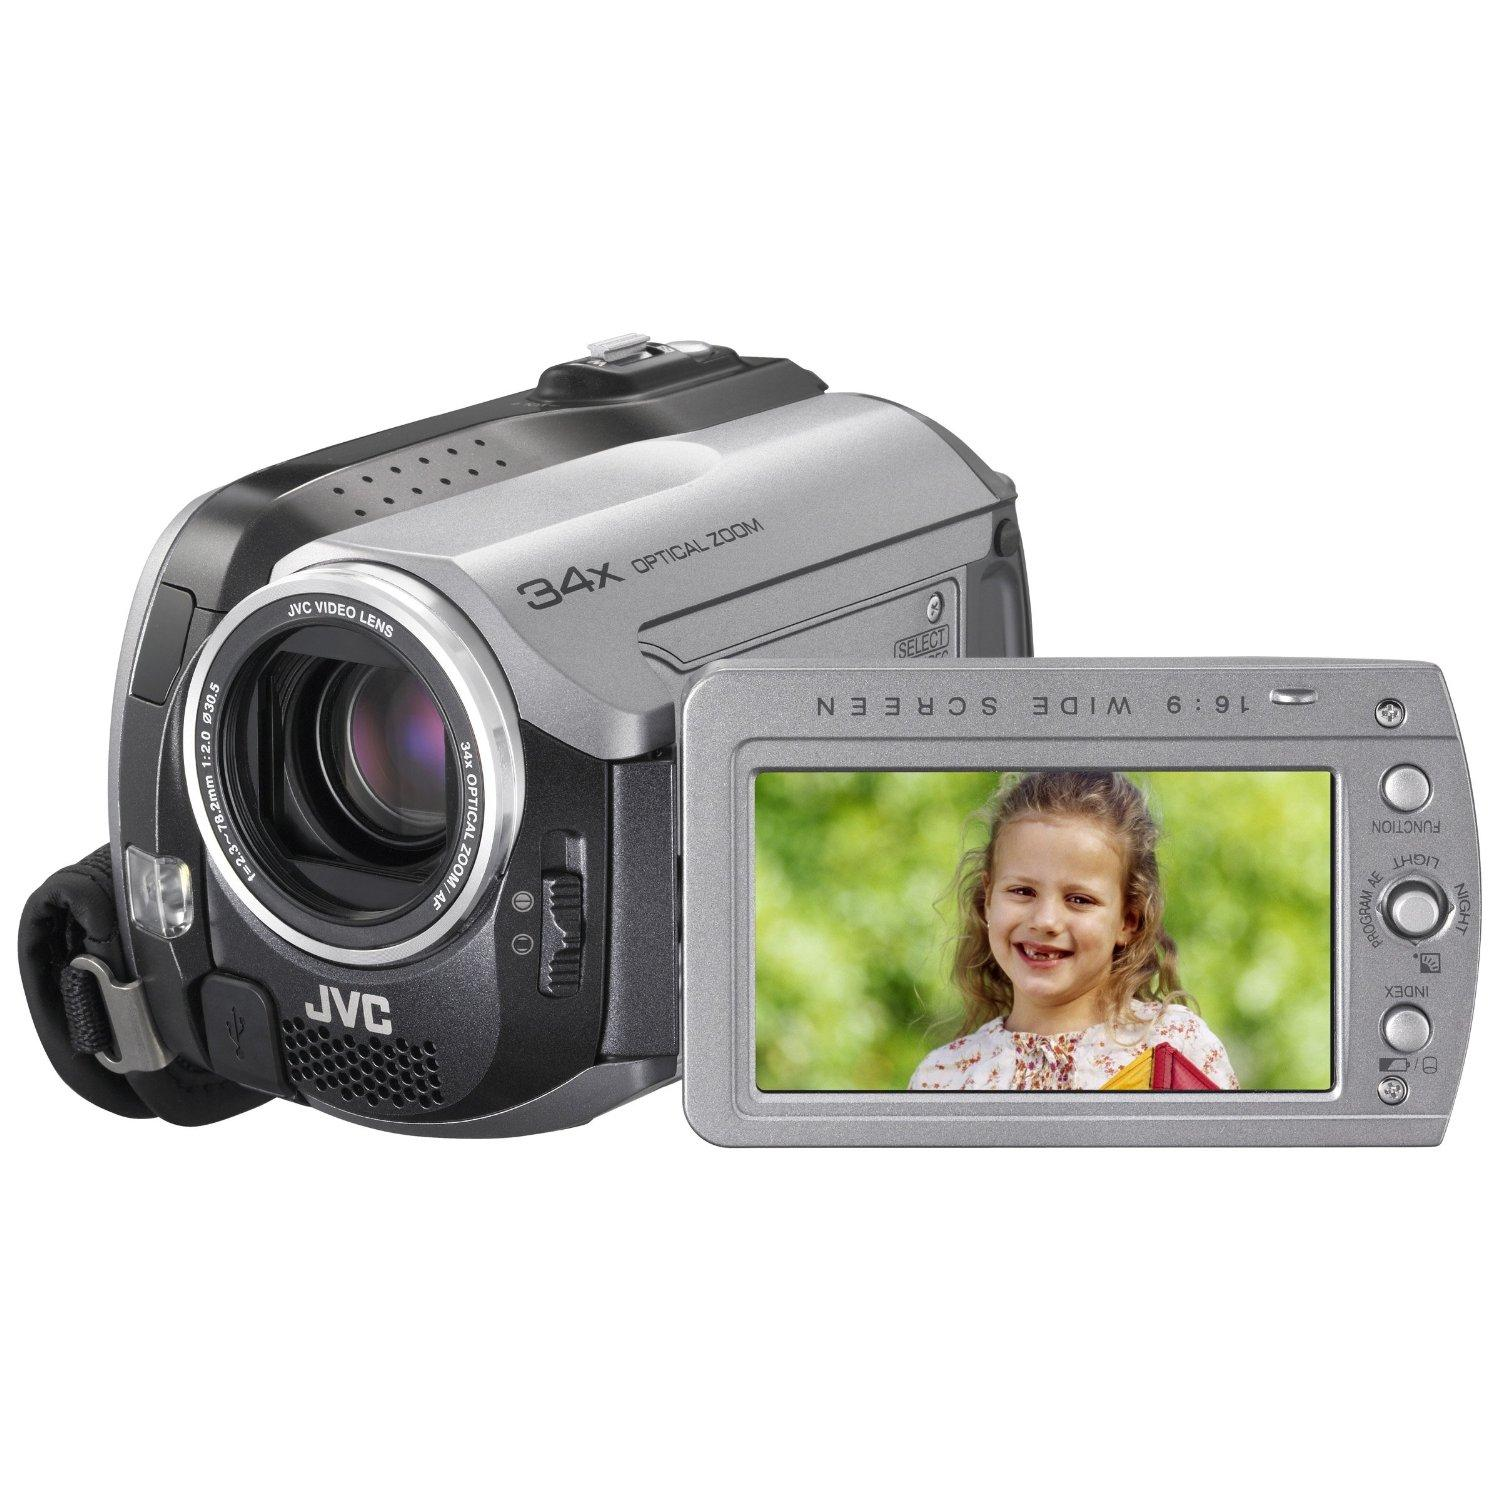 JVC GZ-MG130 EVERIO - Camescope - GZ-MG130 EVERIO - Disque dur 30 Go/SD Card